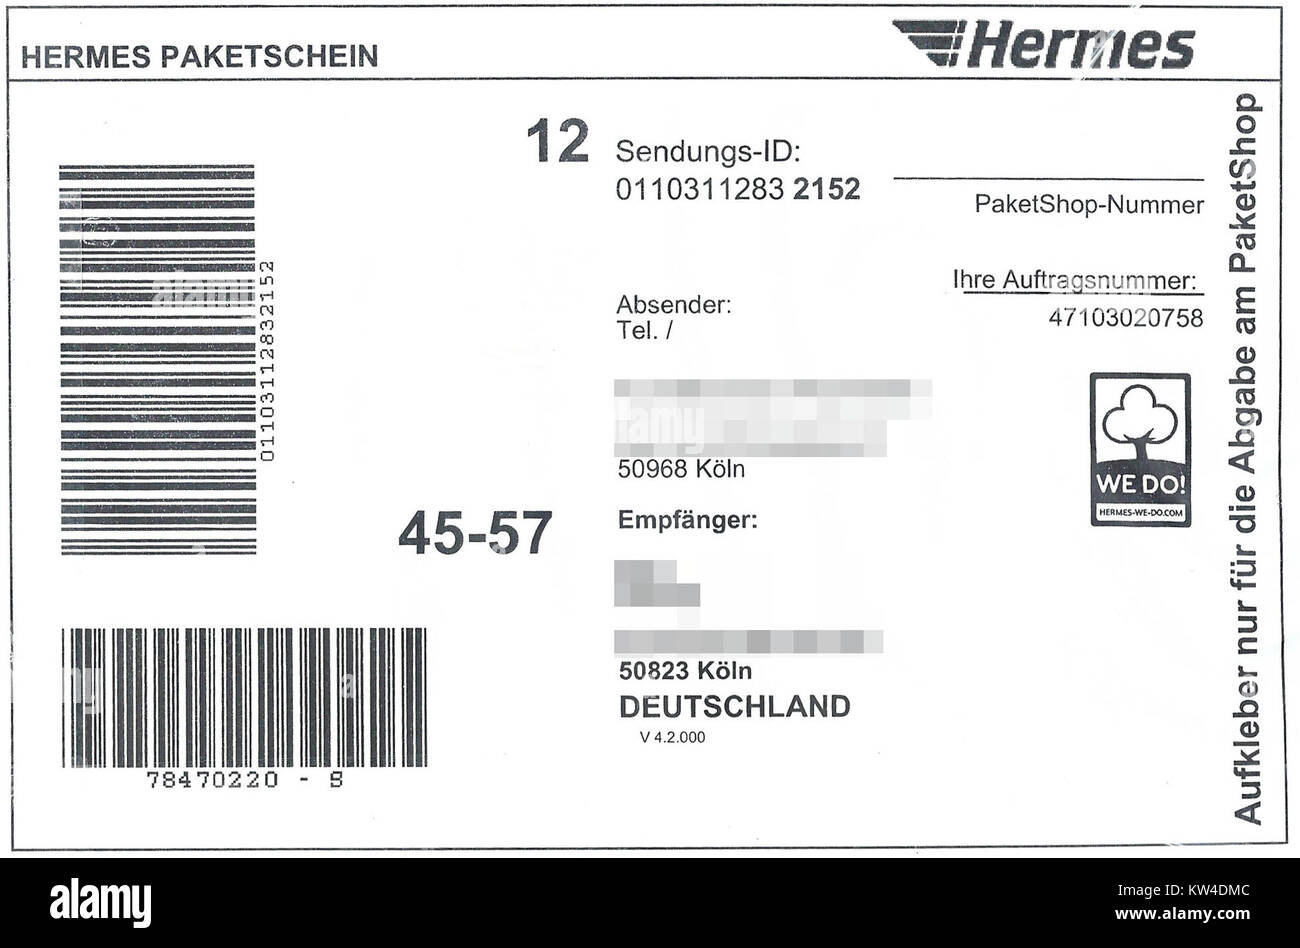 Paketaufkleber Hermes Paket Via Paketshop 2017 Stock Photo